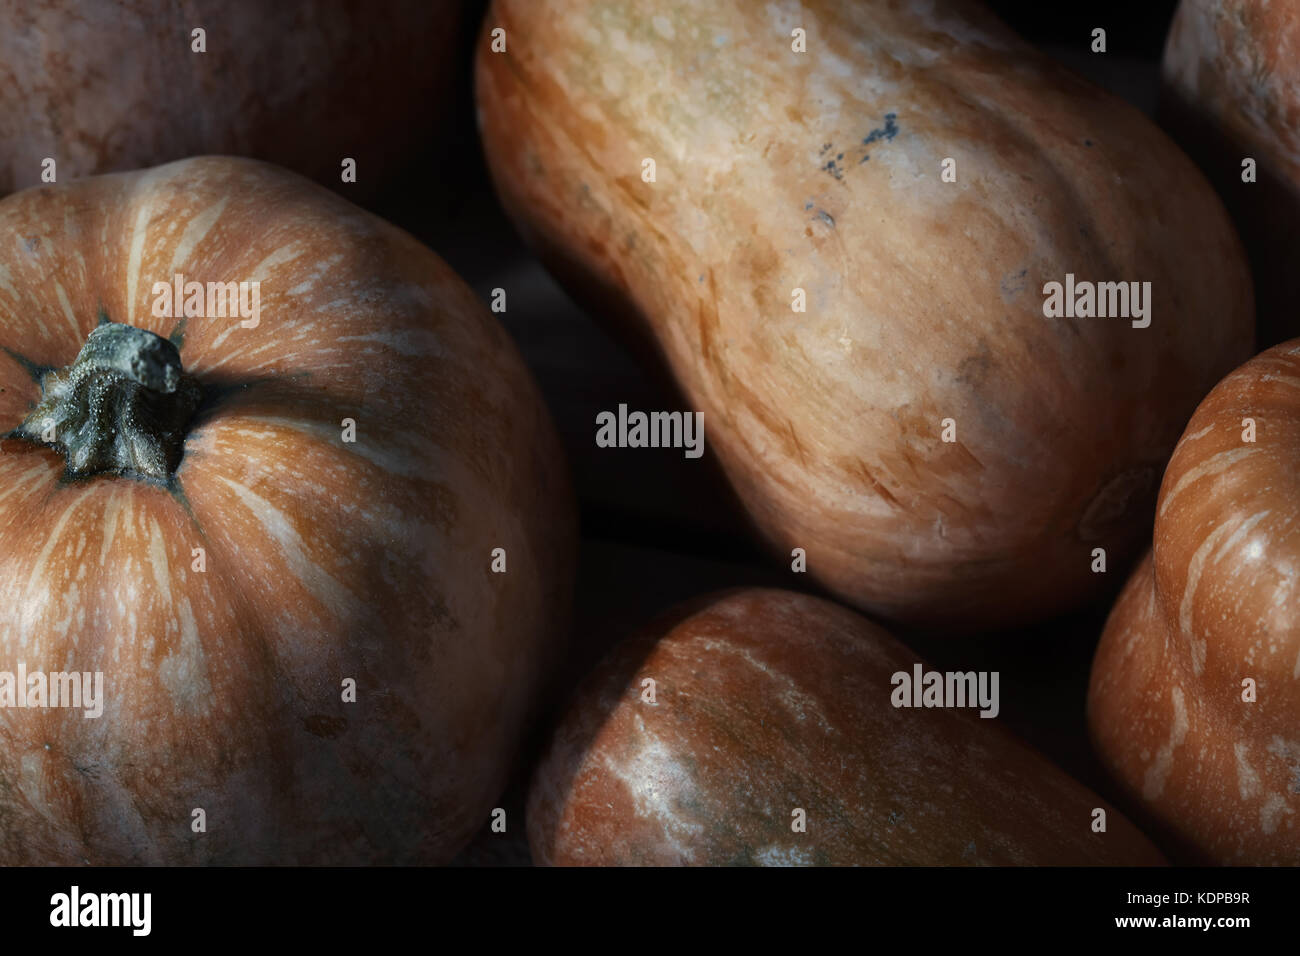 Stack of pumpkins on a wooden table. Close-up Stock Photo